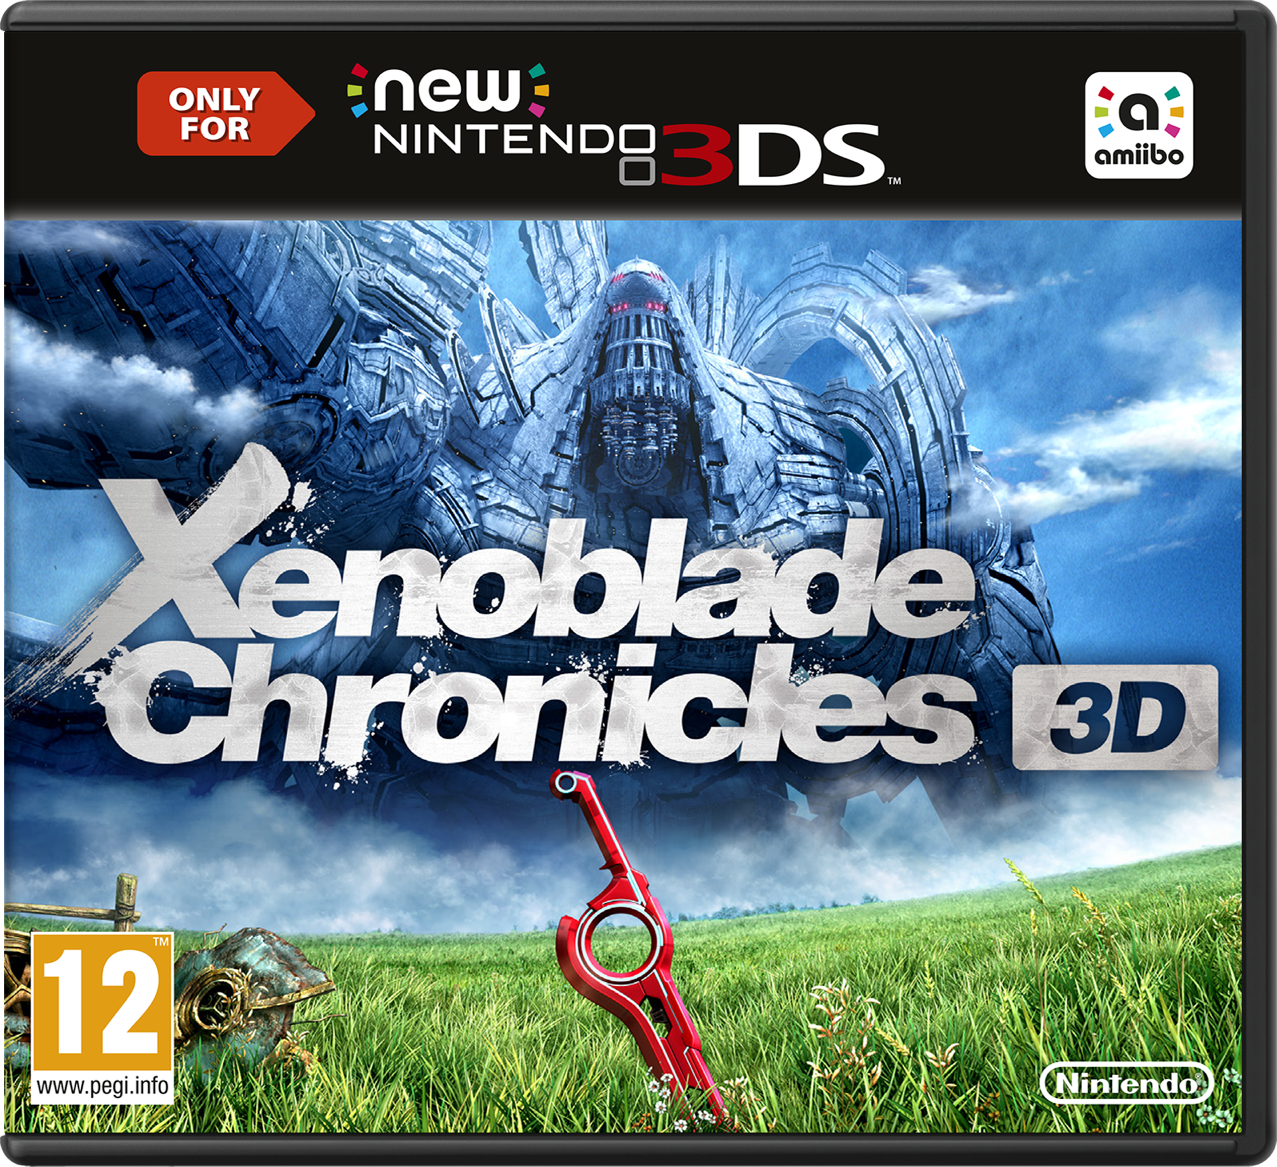 Digital version of Xenoblade Chronicles 3D doesn't fit on the New 3DS's standard SD card